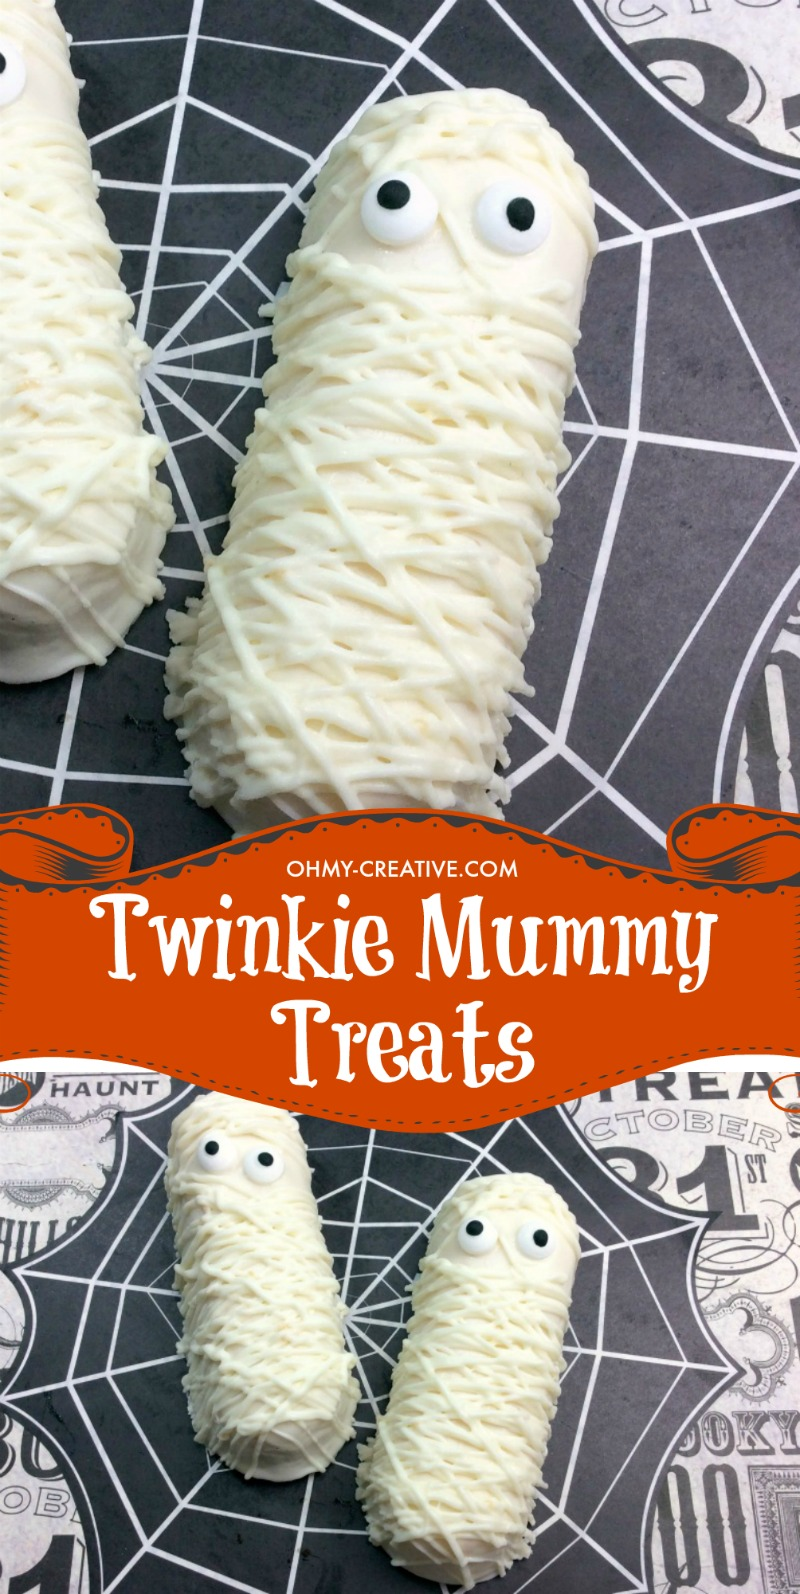 Finished Twinkie Mummy cakes - perfect Halloween party treats